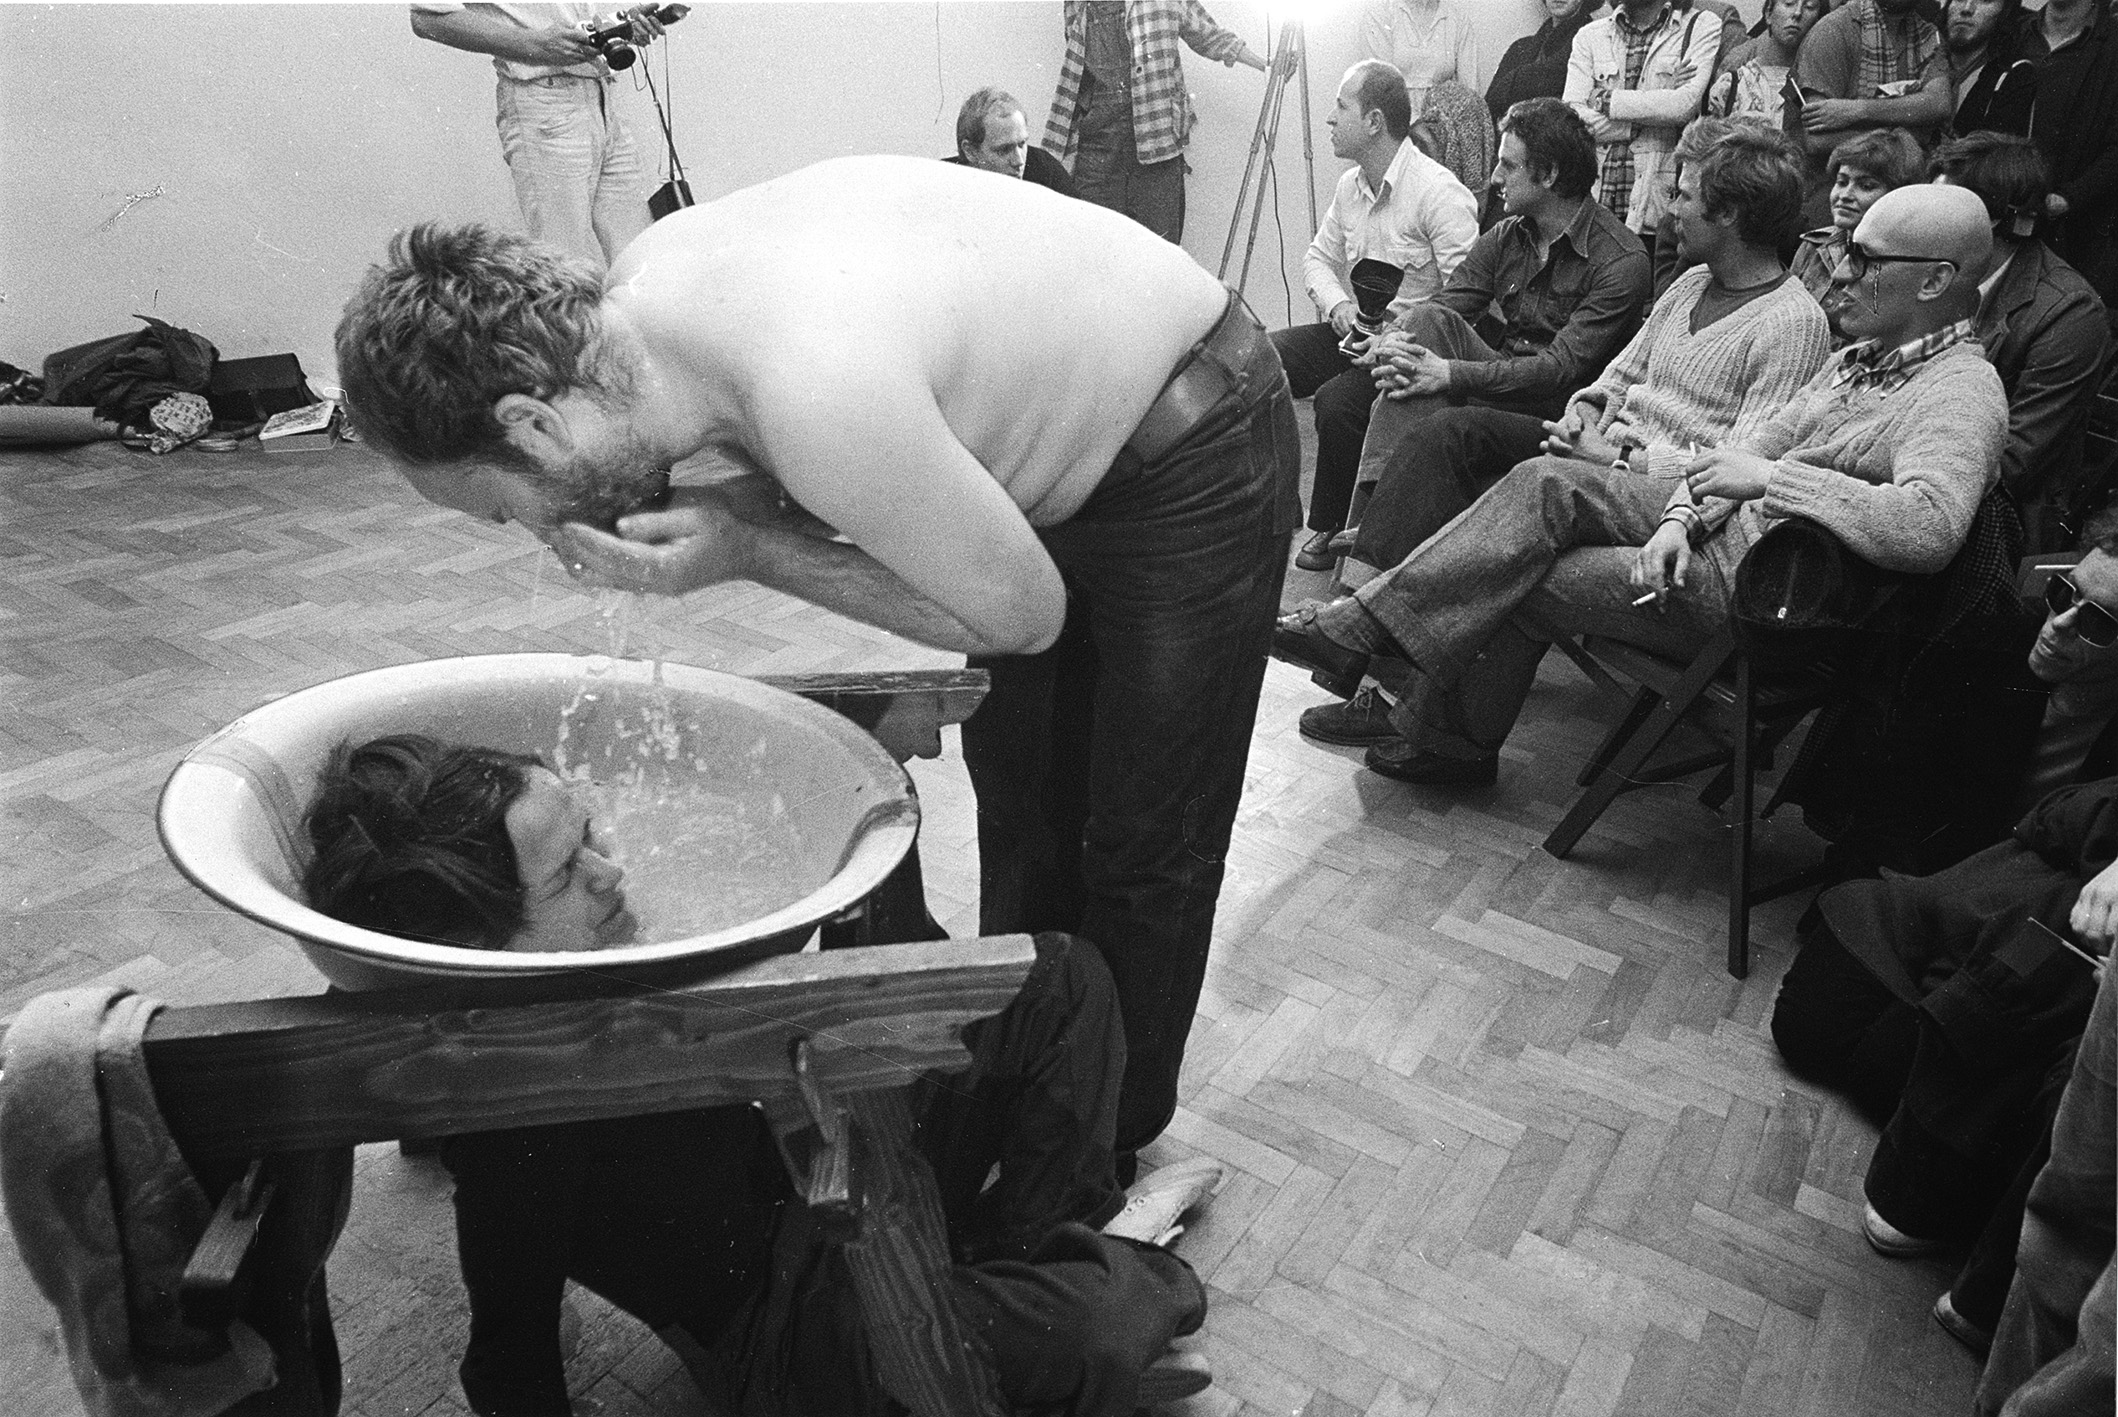 "KwieKulik ""Activities on the Head"", performance in Labirynt galery, 1978, Lublin, Poland. Photo by Andrzej Polakowski."